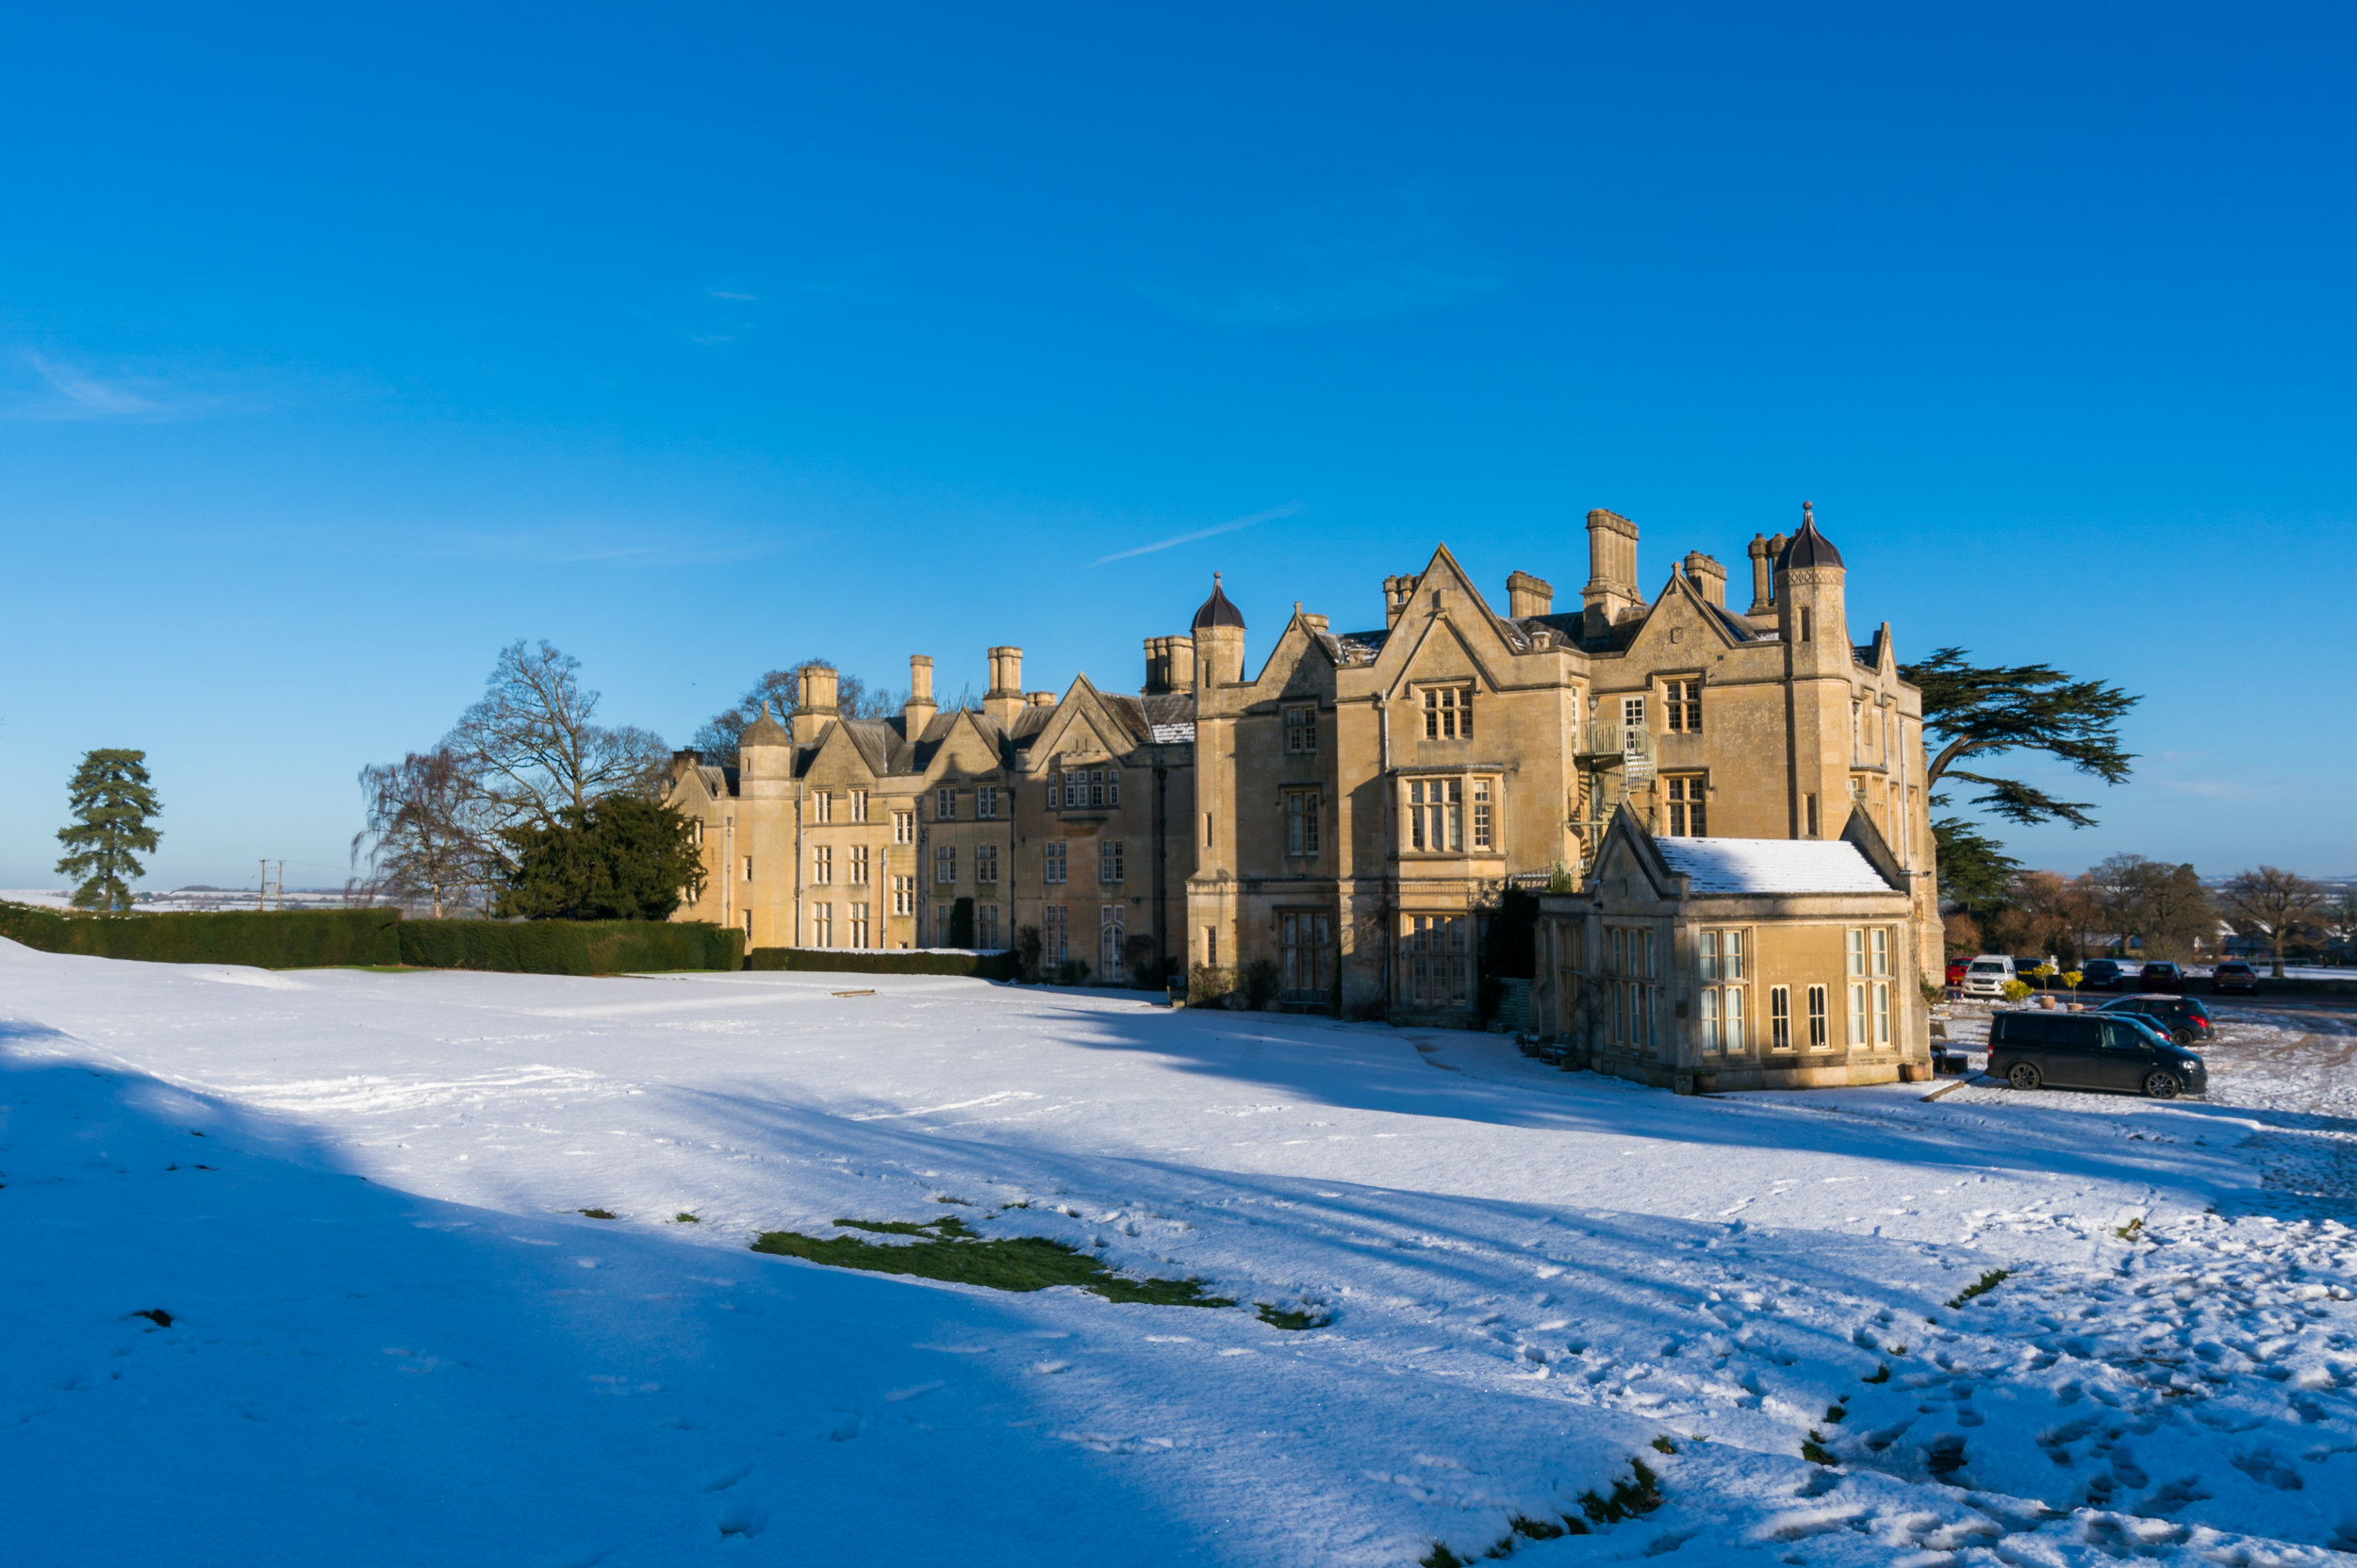 Dumbleton Hall in the snow